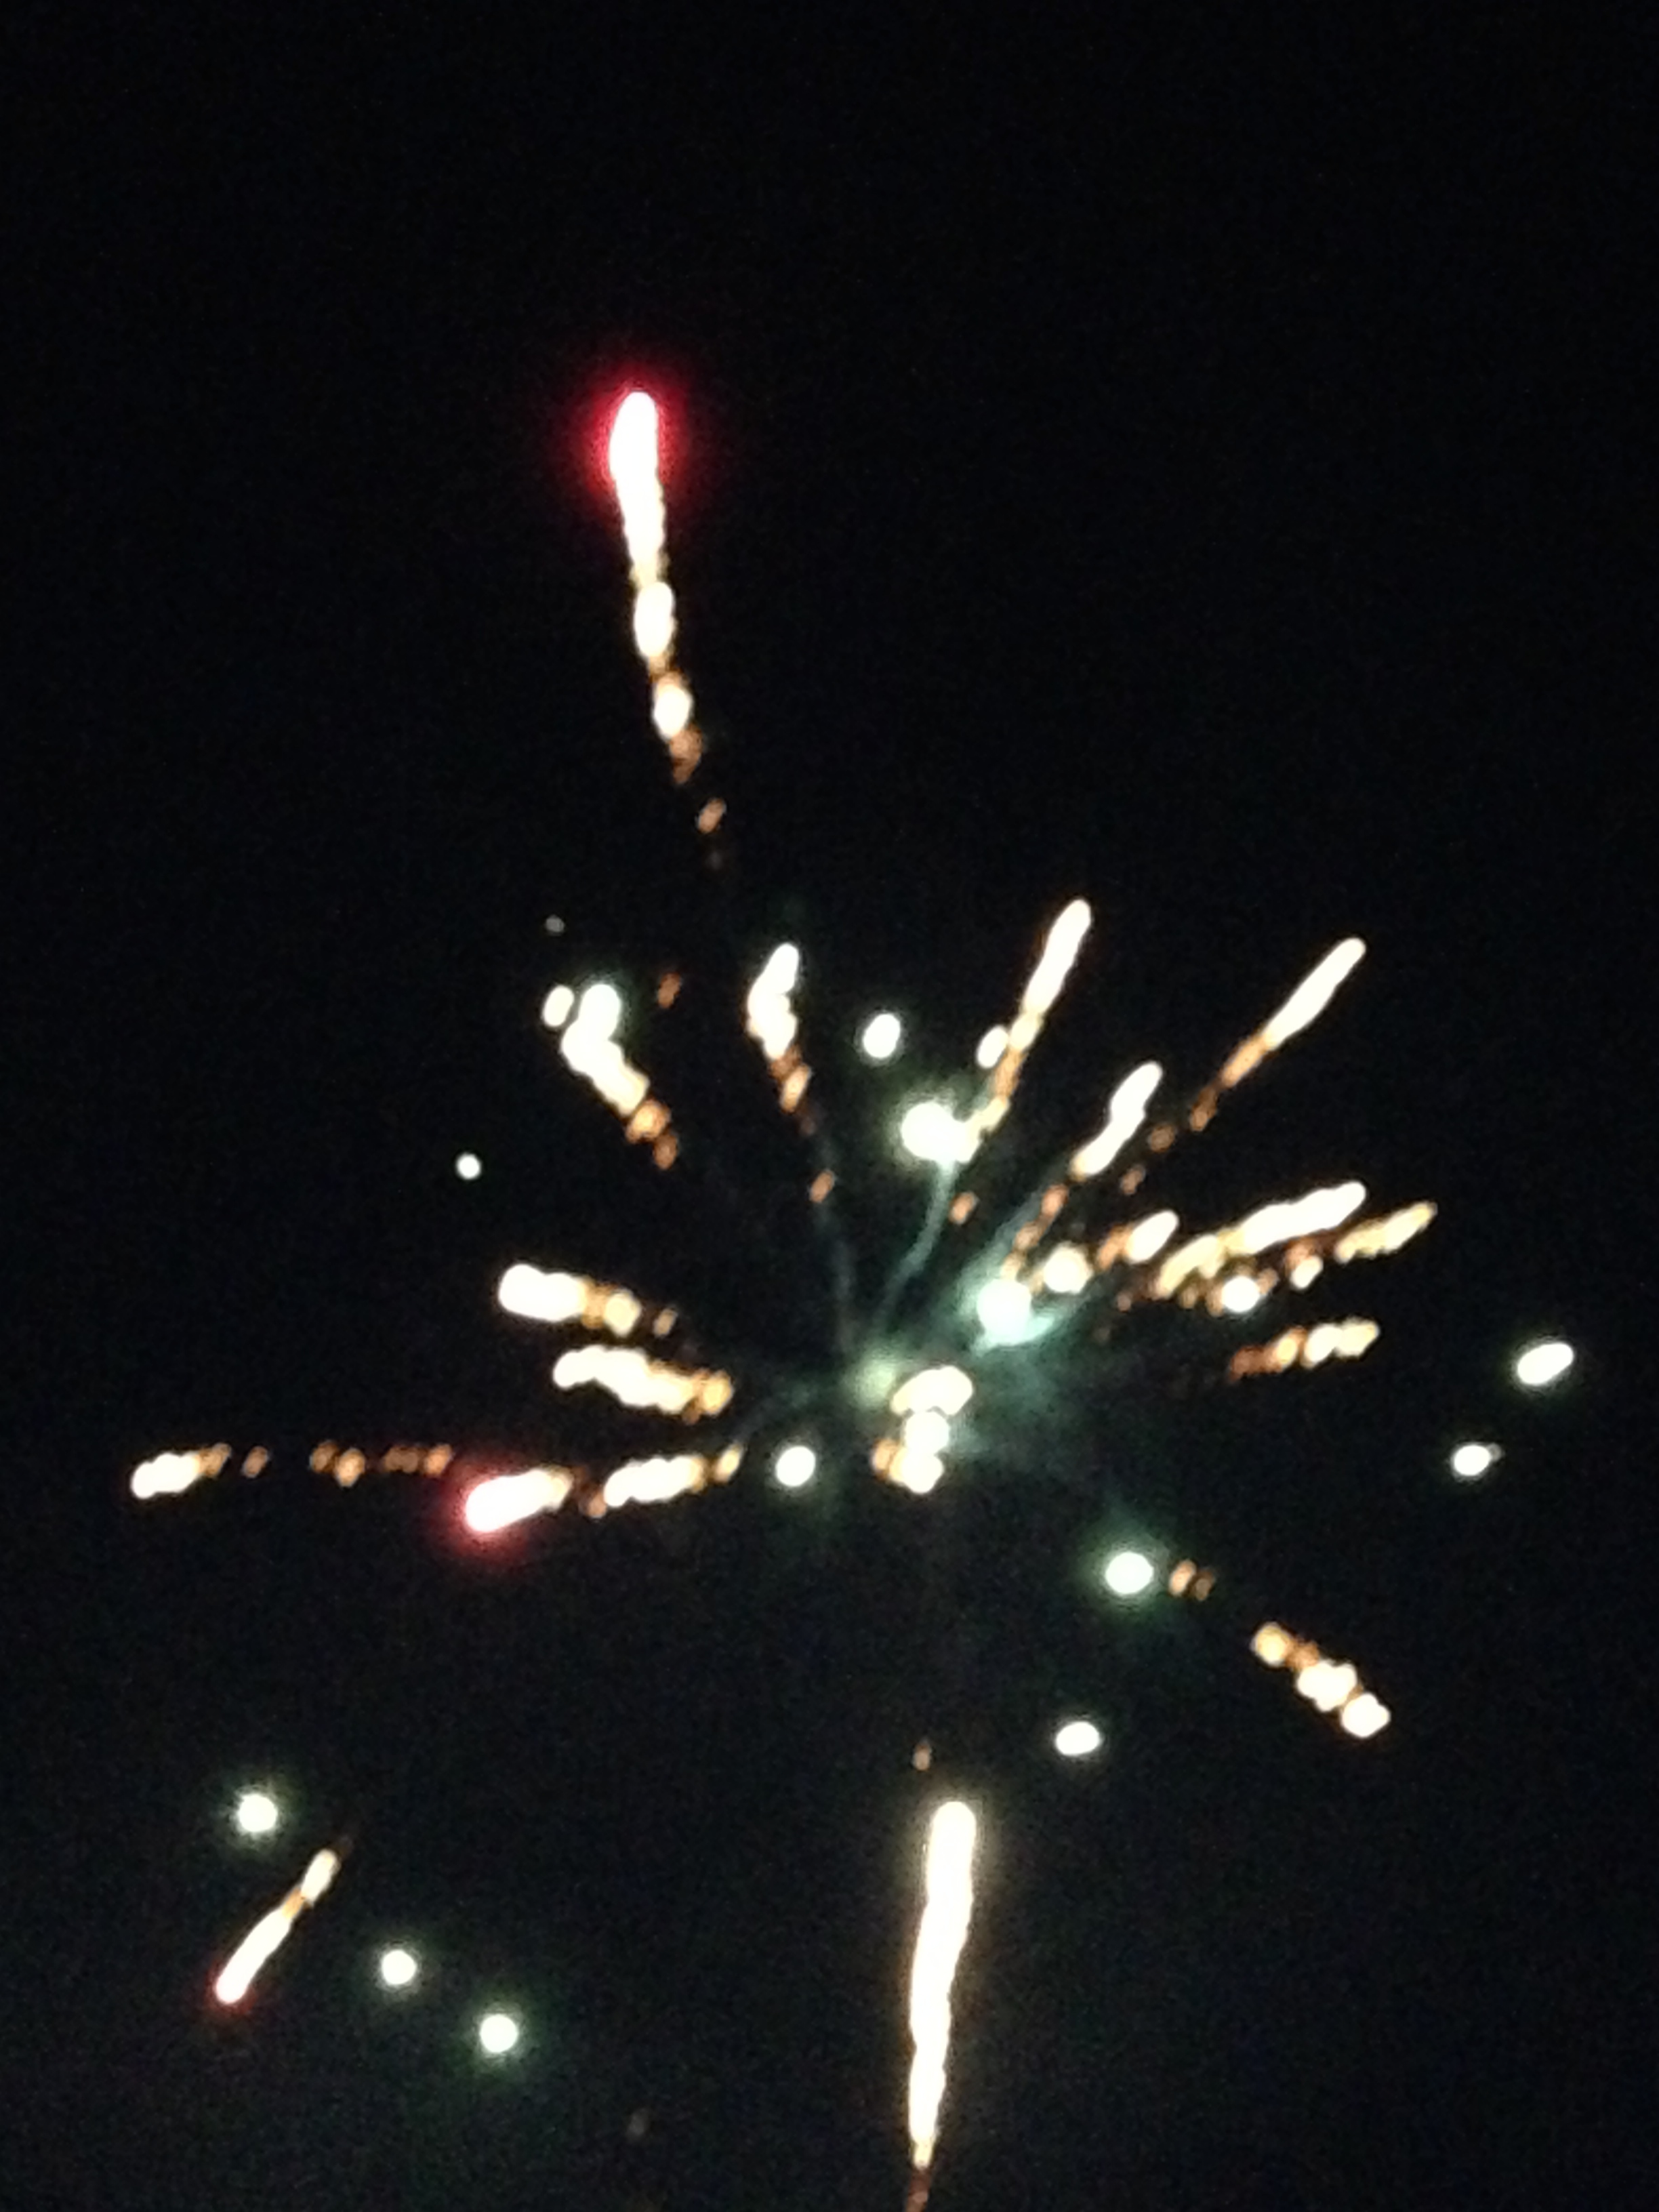 I wished I knew how to take firework pictures.